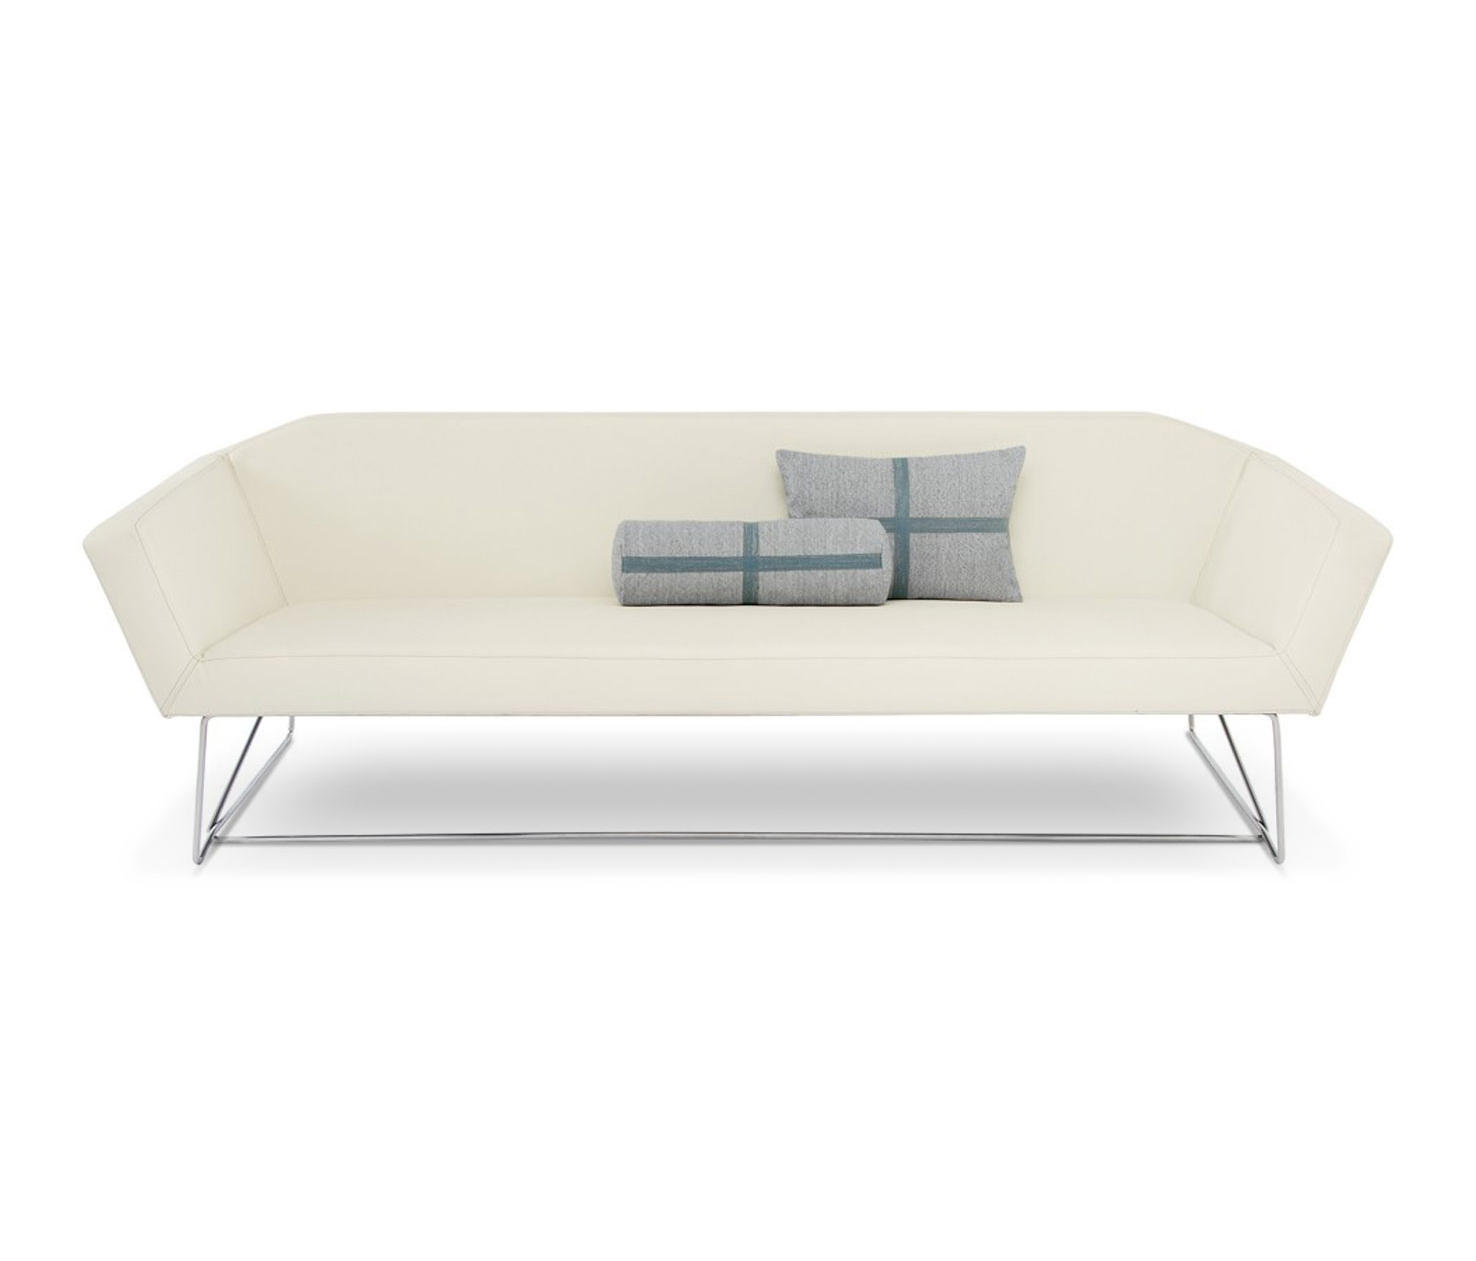 Minimalist sofas minimalist leather sofa 1025theparty for Minimalist sofa